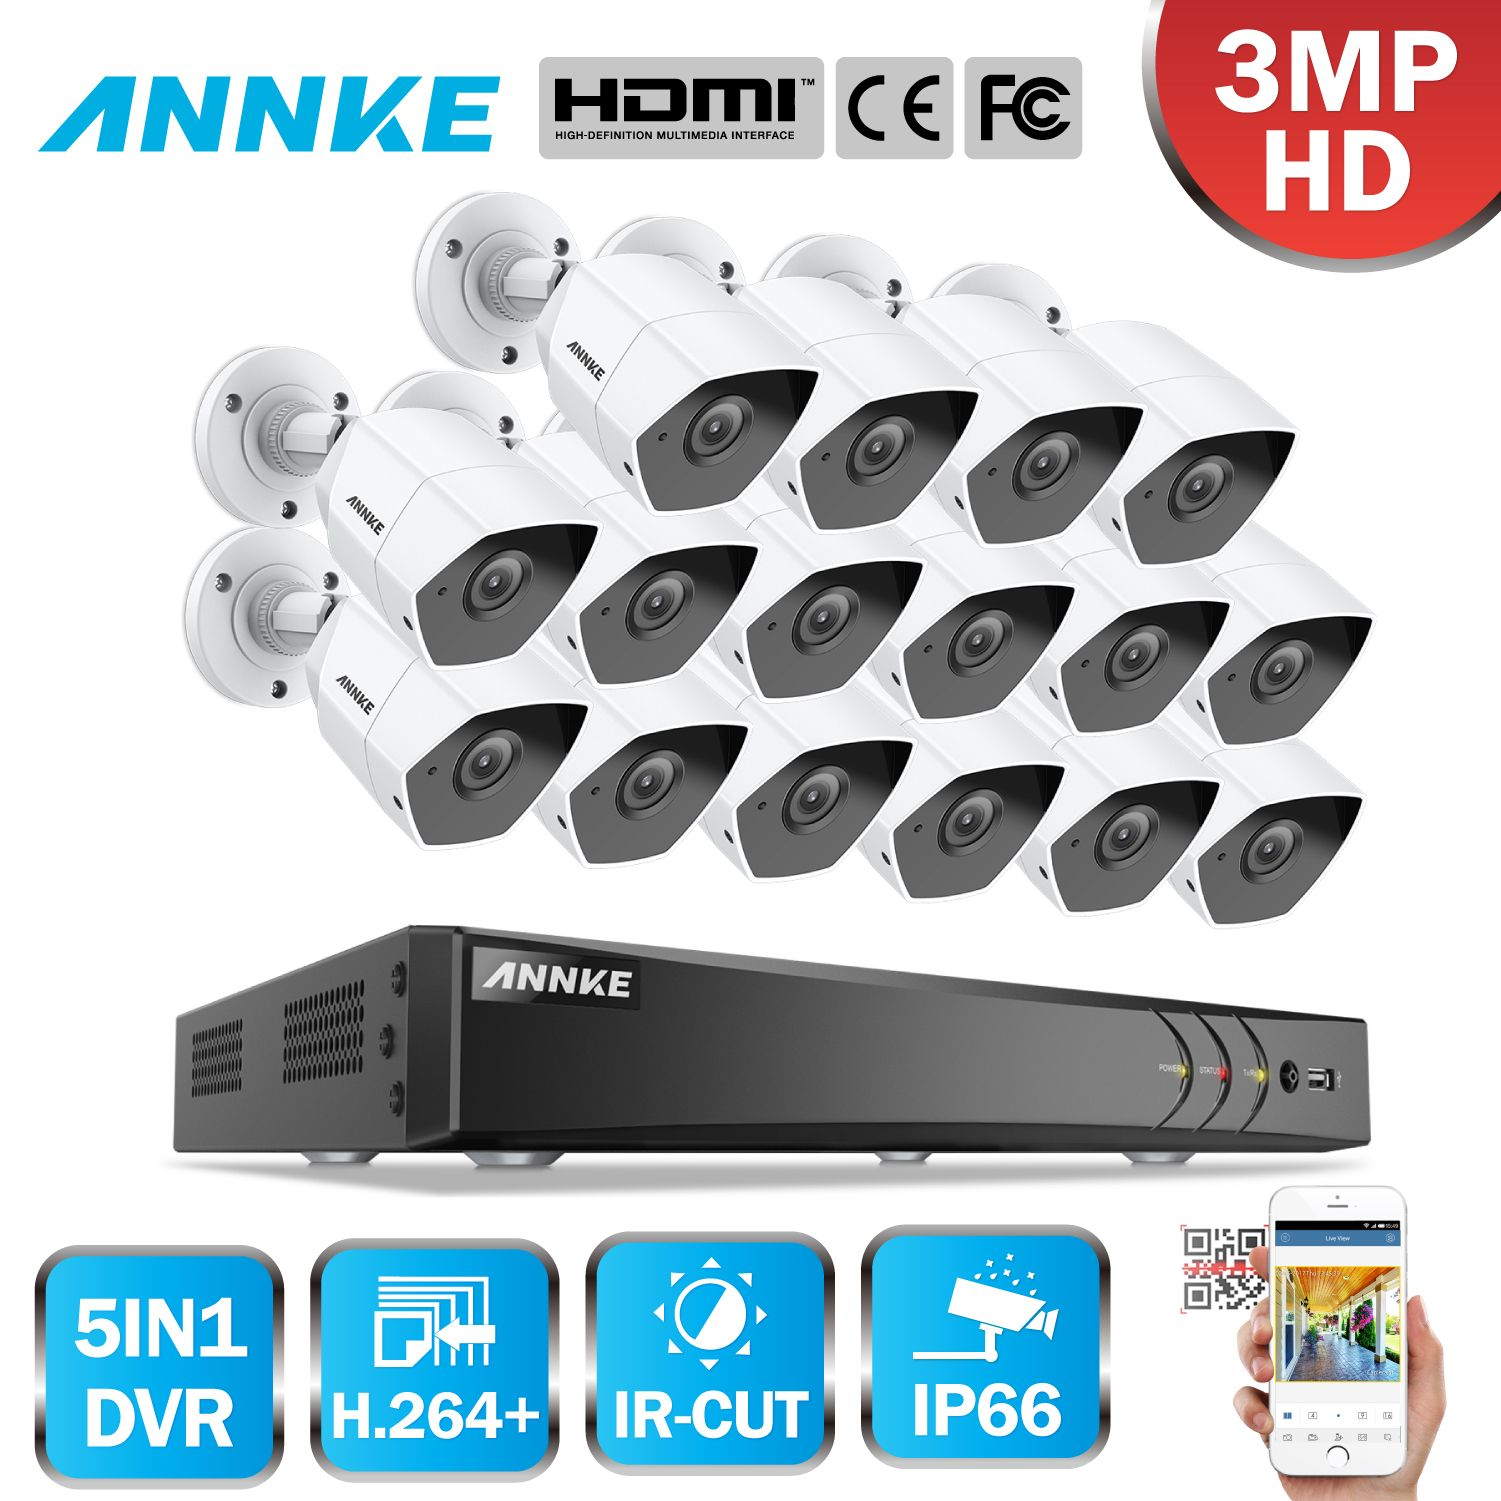 ANNKE Volle HD 16CH 5in1 3MP CCTV System 16 stücke 3MP Sicherheit Kugel Wasserdichte Kamera Smart IR Outdoor 3MP Video überwachung Kit